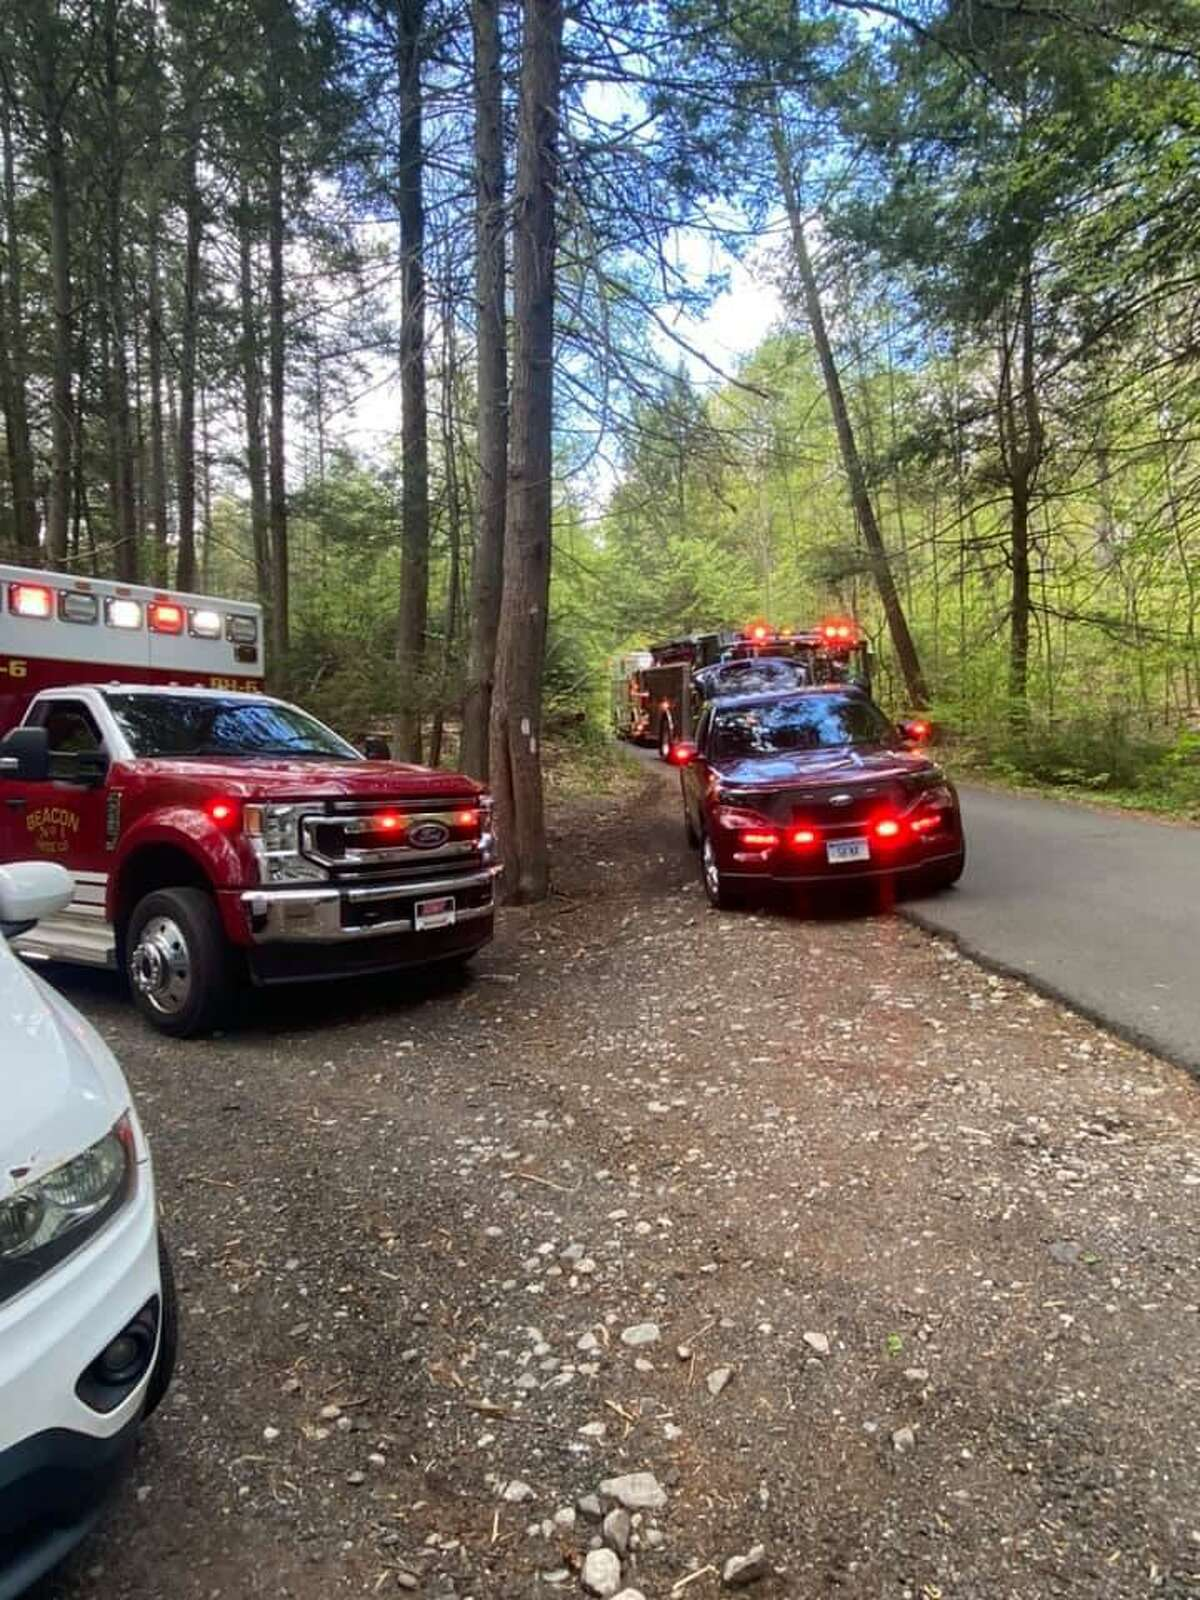 Crews at High Rock Park in Naugatuck, Conn., for a hiker rescue on Monday, May 10, 2021.